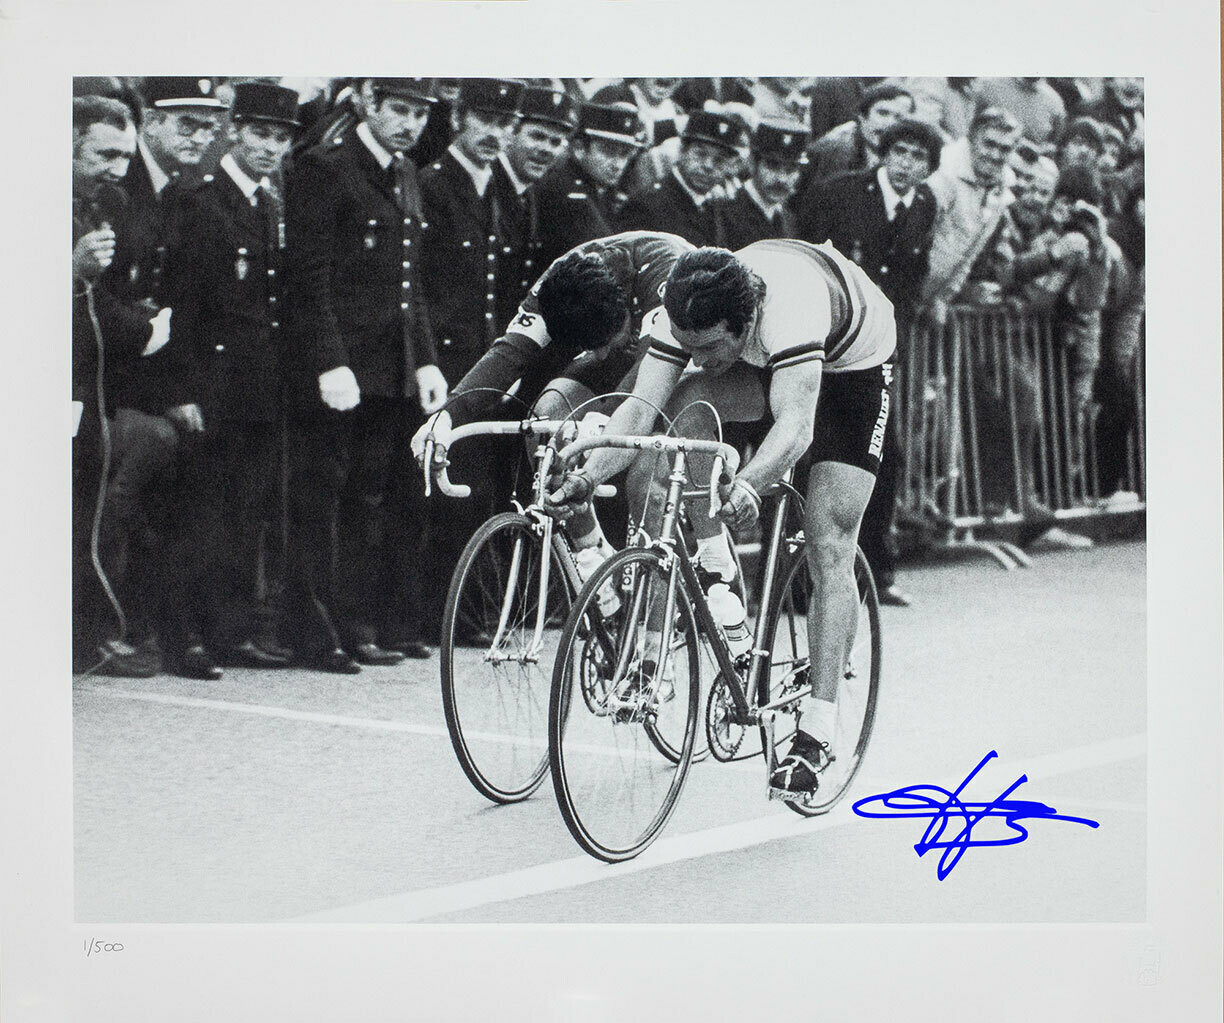 Bernard Hinault 1980 World Champion